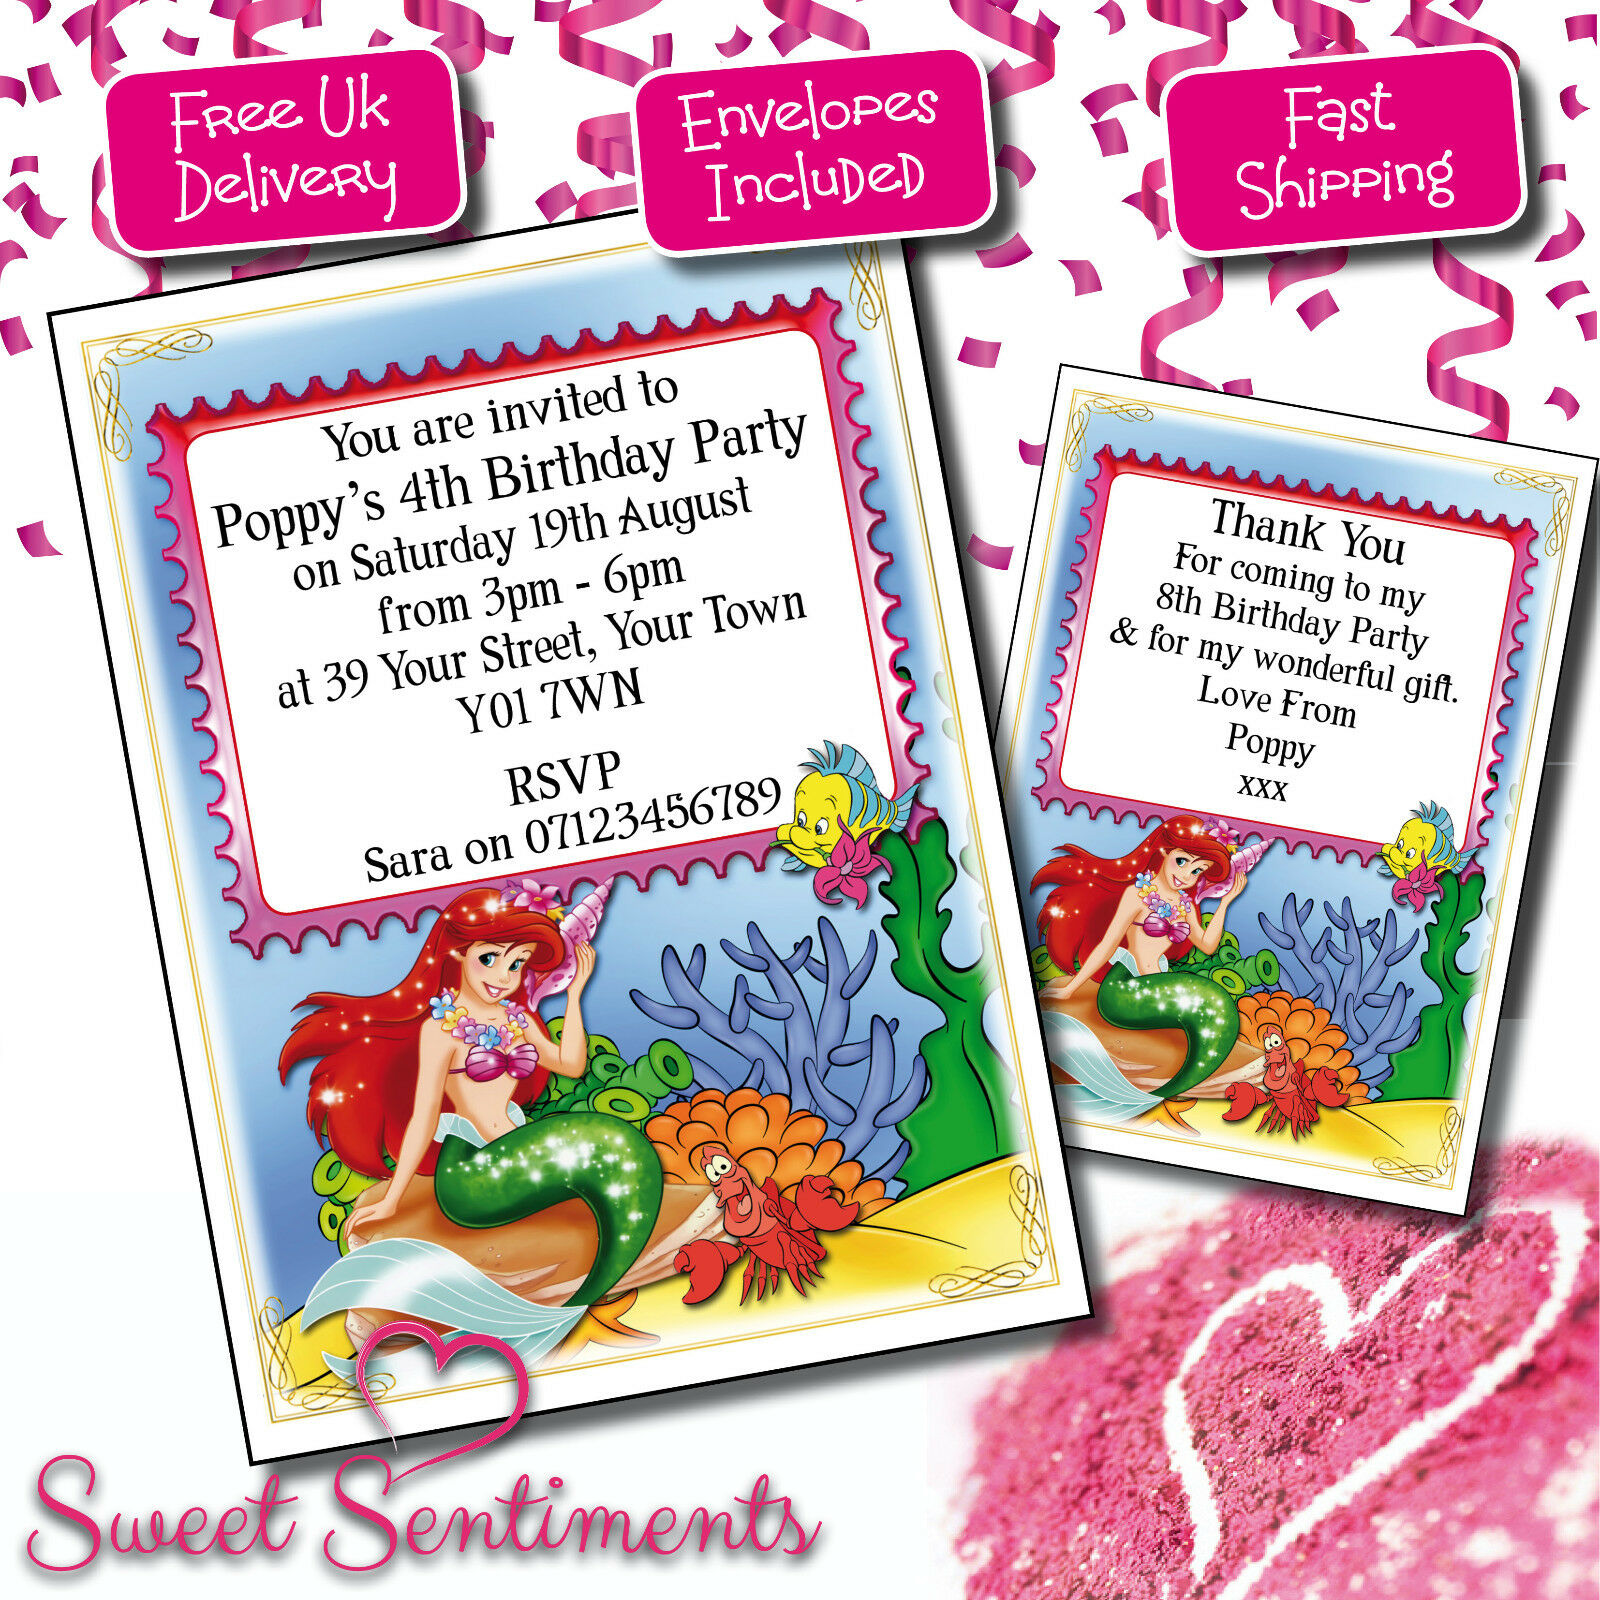 Personalised little mermaid ariel birthday party invitations thank personalised little mermaid ariel birthday party invitations thank you cards 1 of 1free shipping filmwisefo